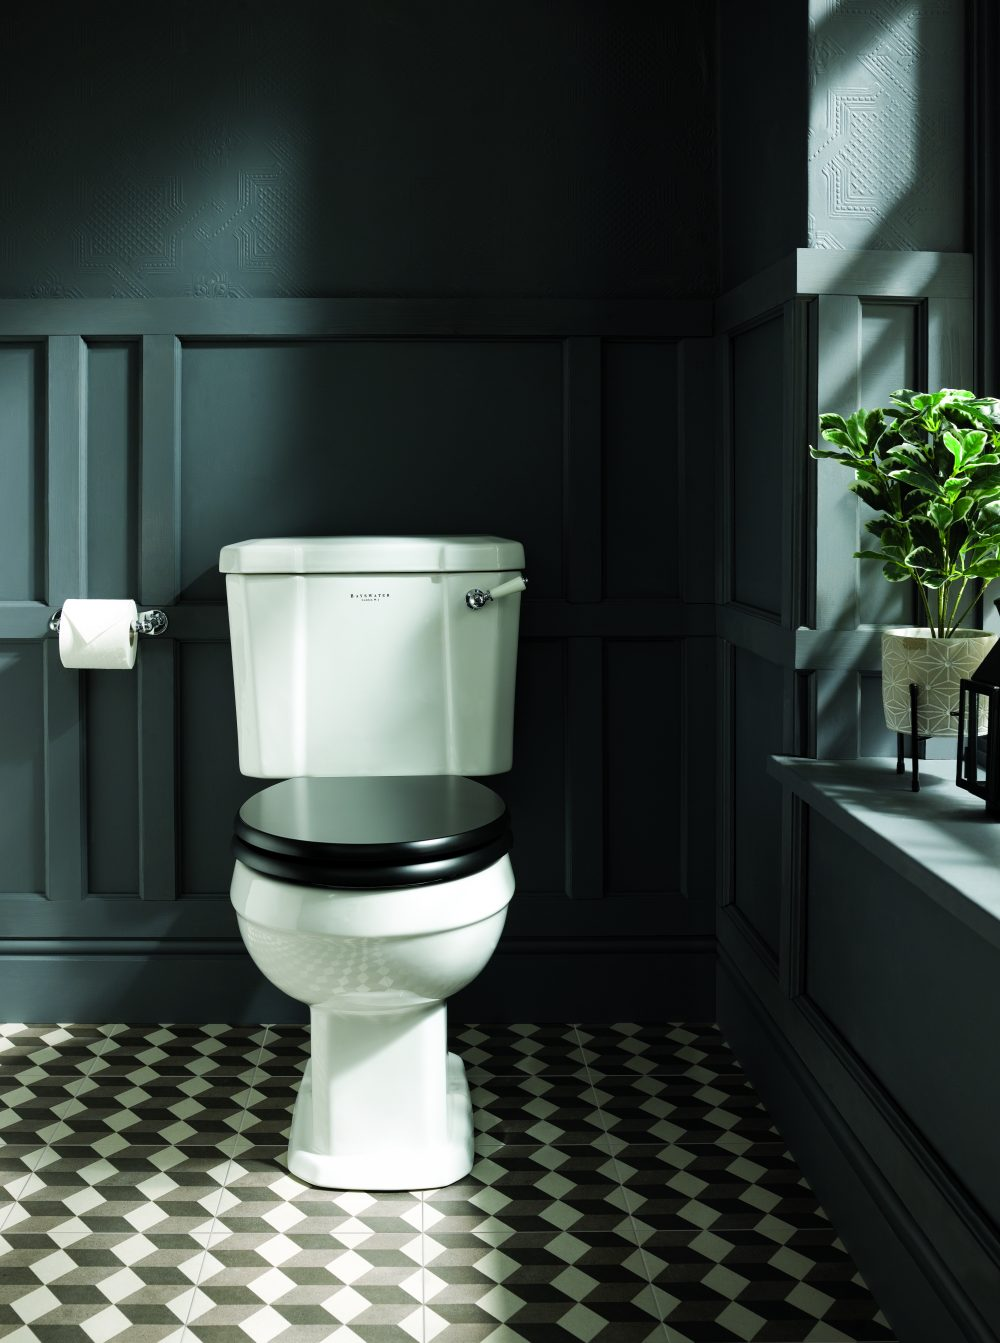 The Fitzroy Close Coupled WC